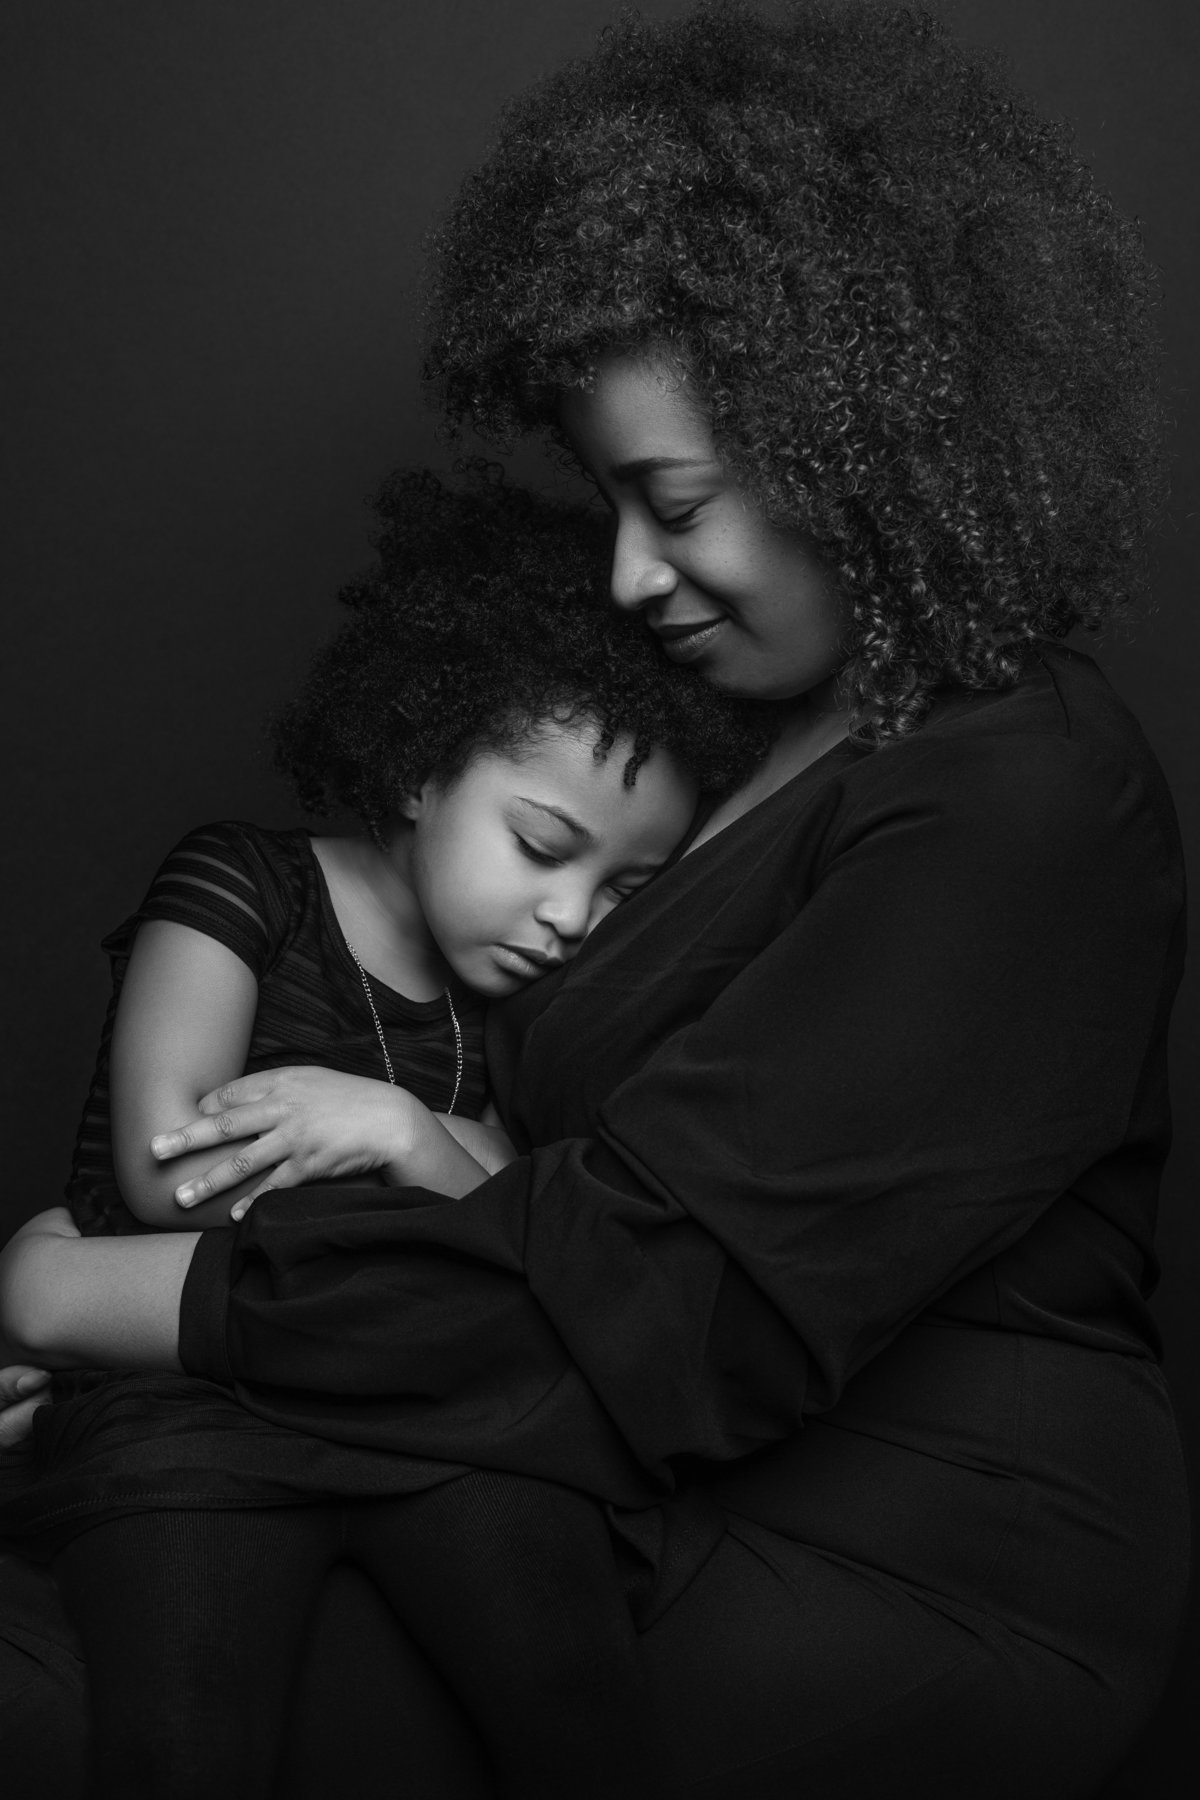 A mother and her young daughter share a tender moment as they pose for a black and white portrait at Janel Lee Photography in Cincinnati Ohio